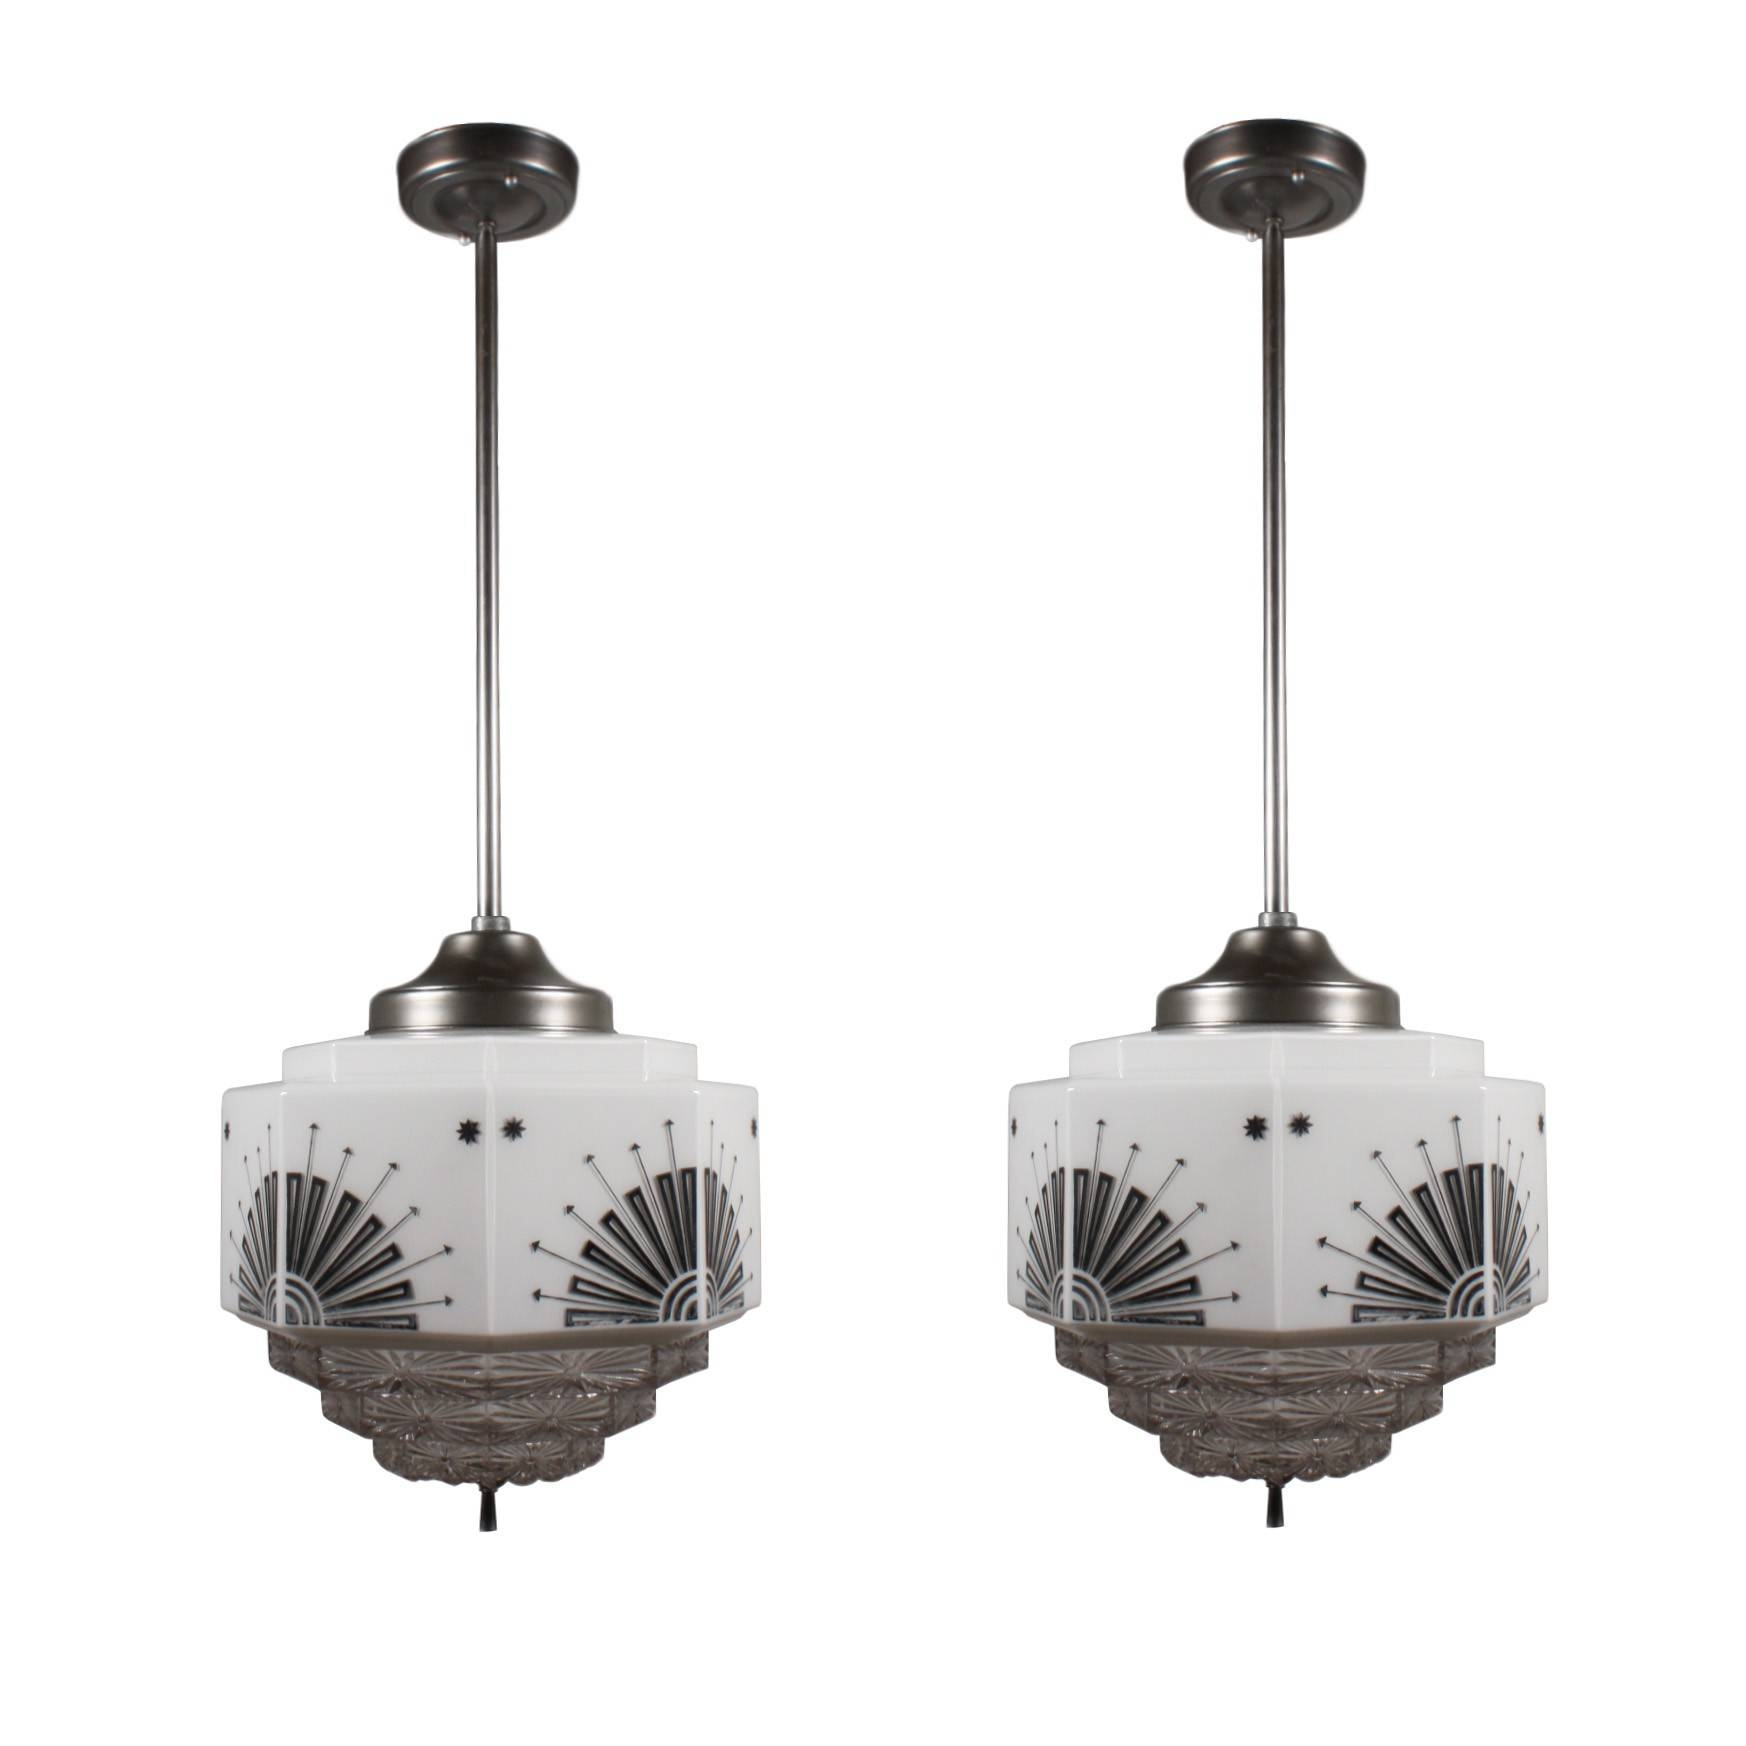 Splendid Antique Art Deco Skyscraper Pendant Lights, Fostoria for Art Nouveau Pendant Lights (Image 14 of 15)